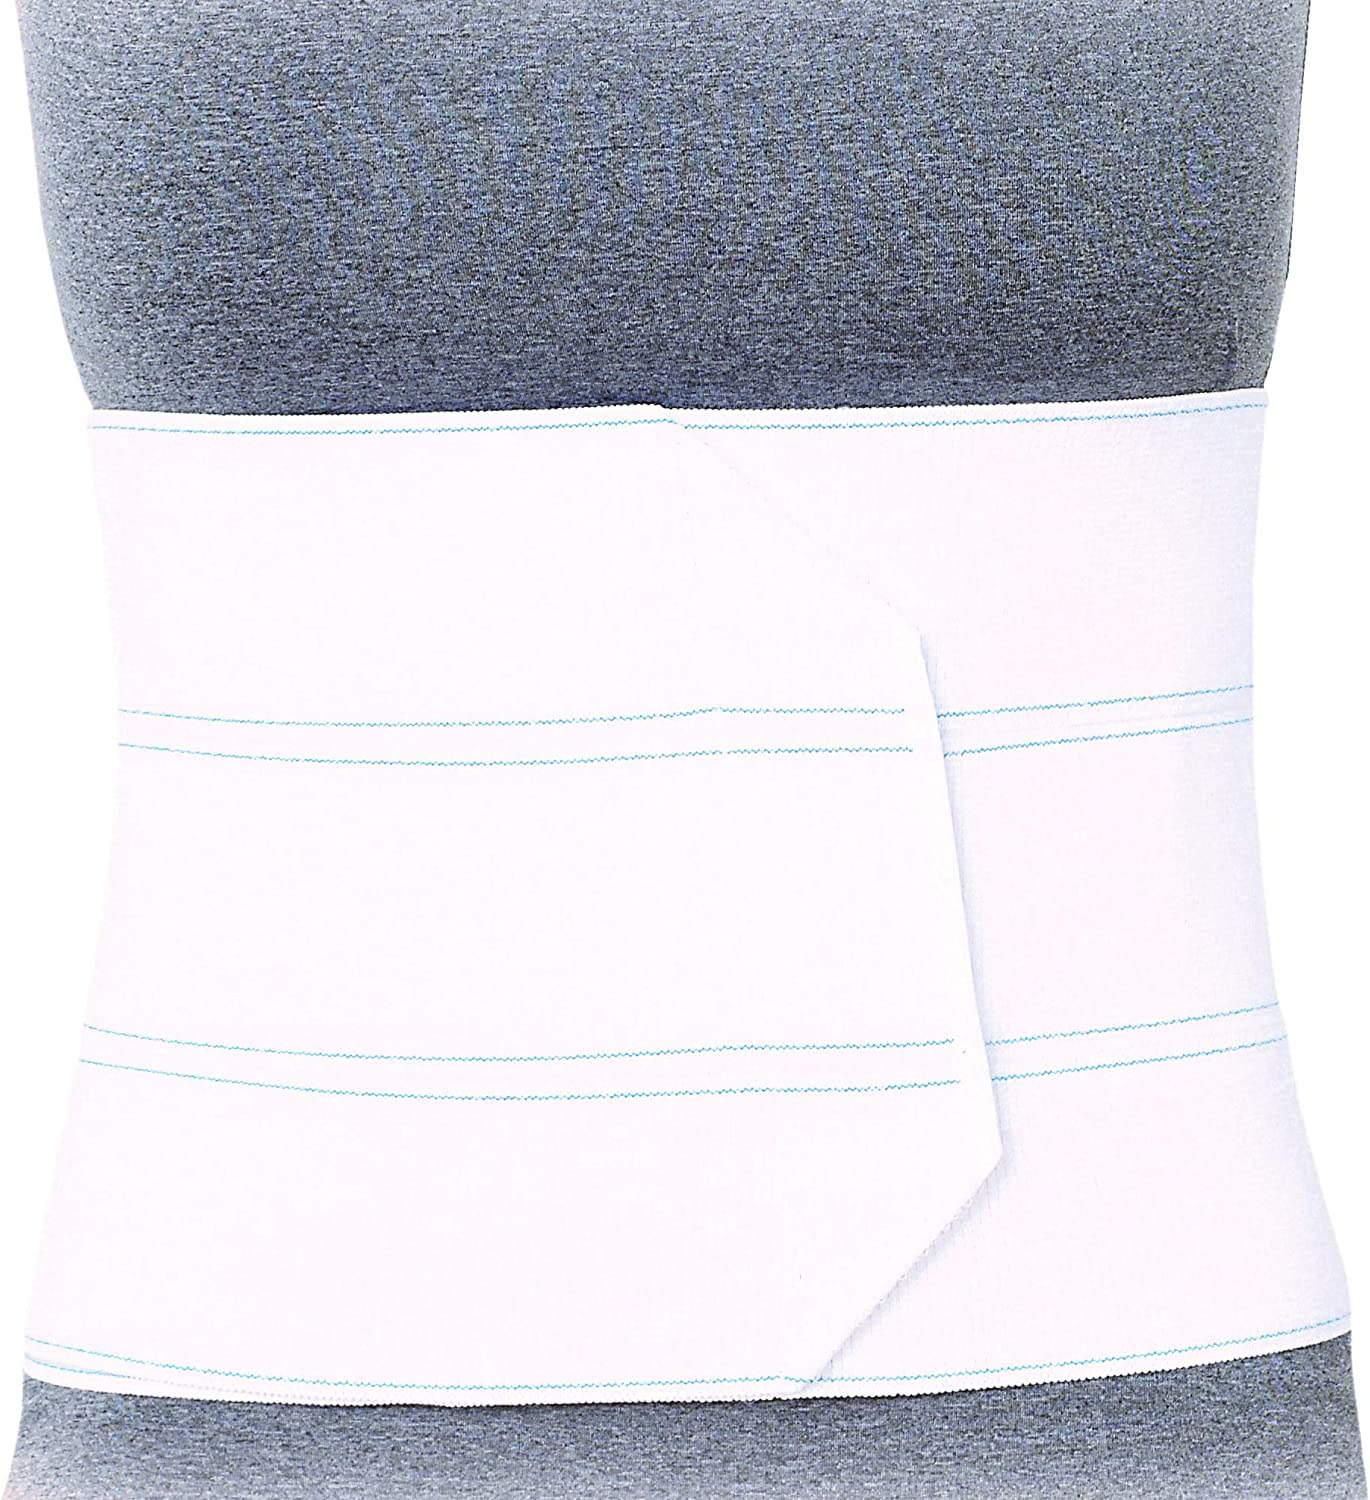 Superior Braces Premium Abdominal Binder for Waist and Back Support, Compression Wrap, Post Surgery Support (3 Panel - Large/X-Large, 45